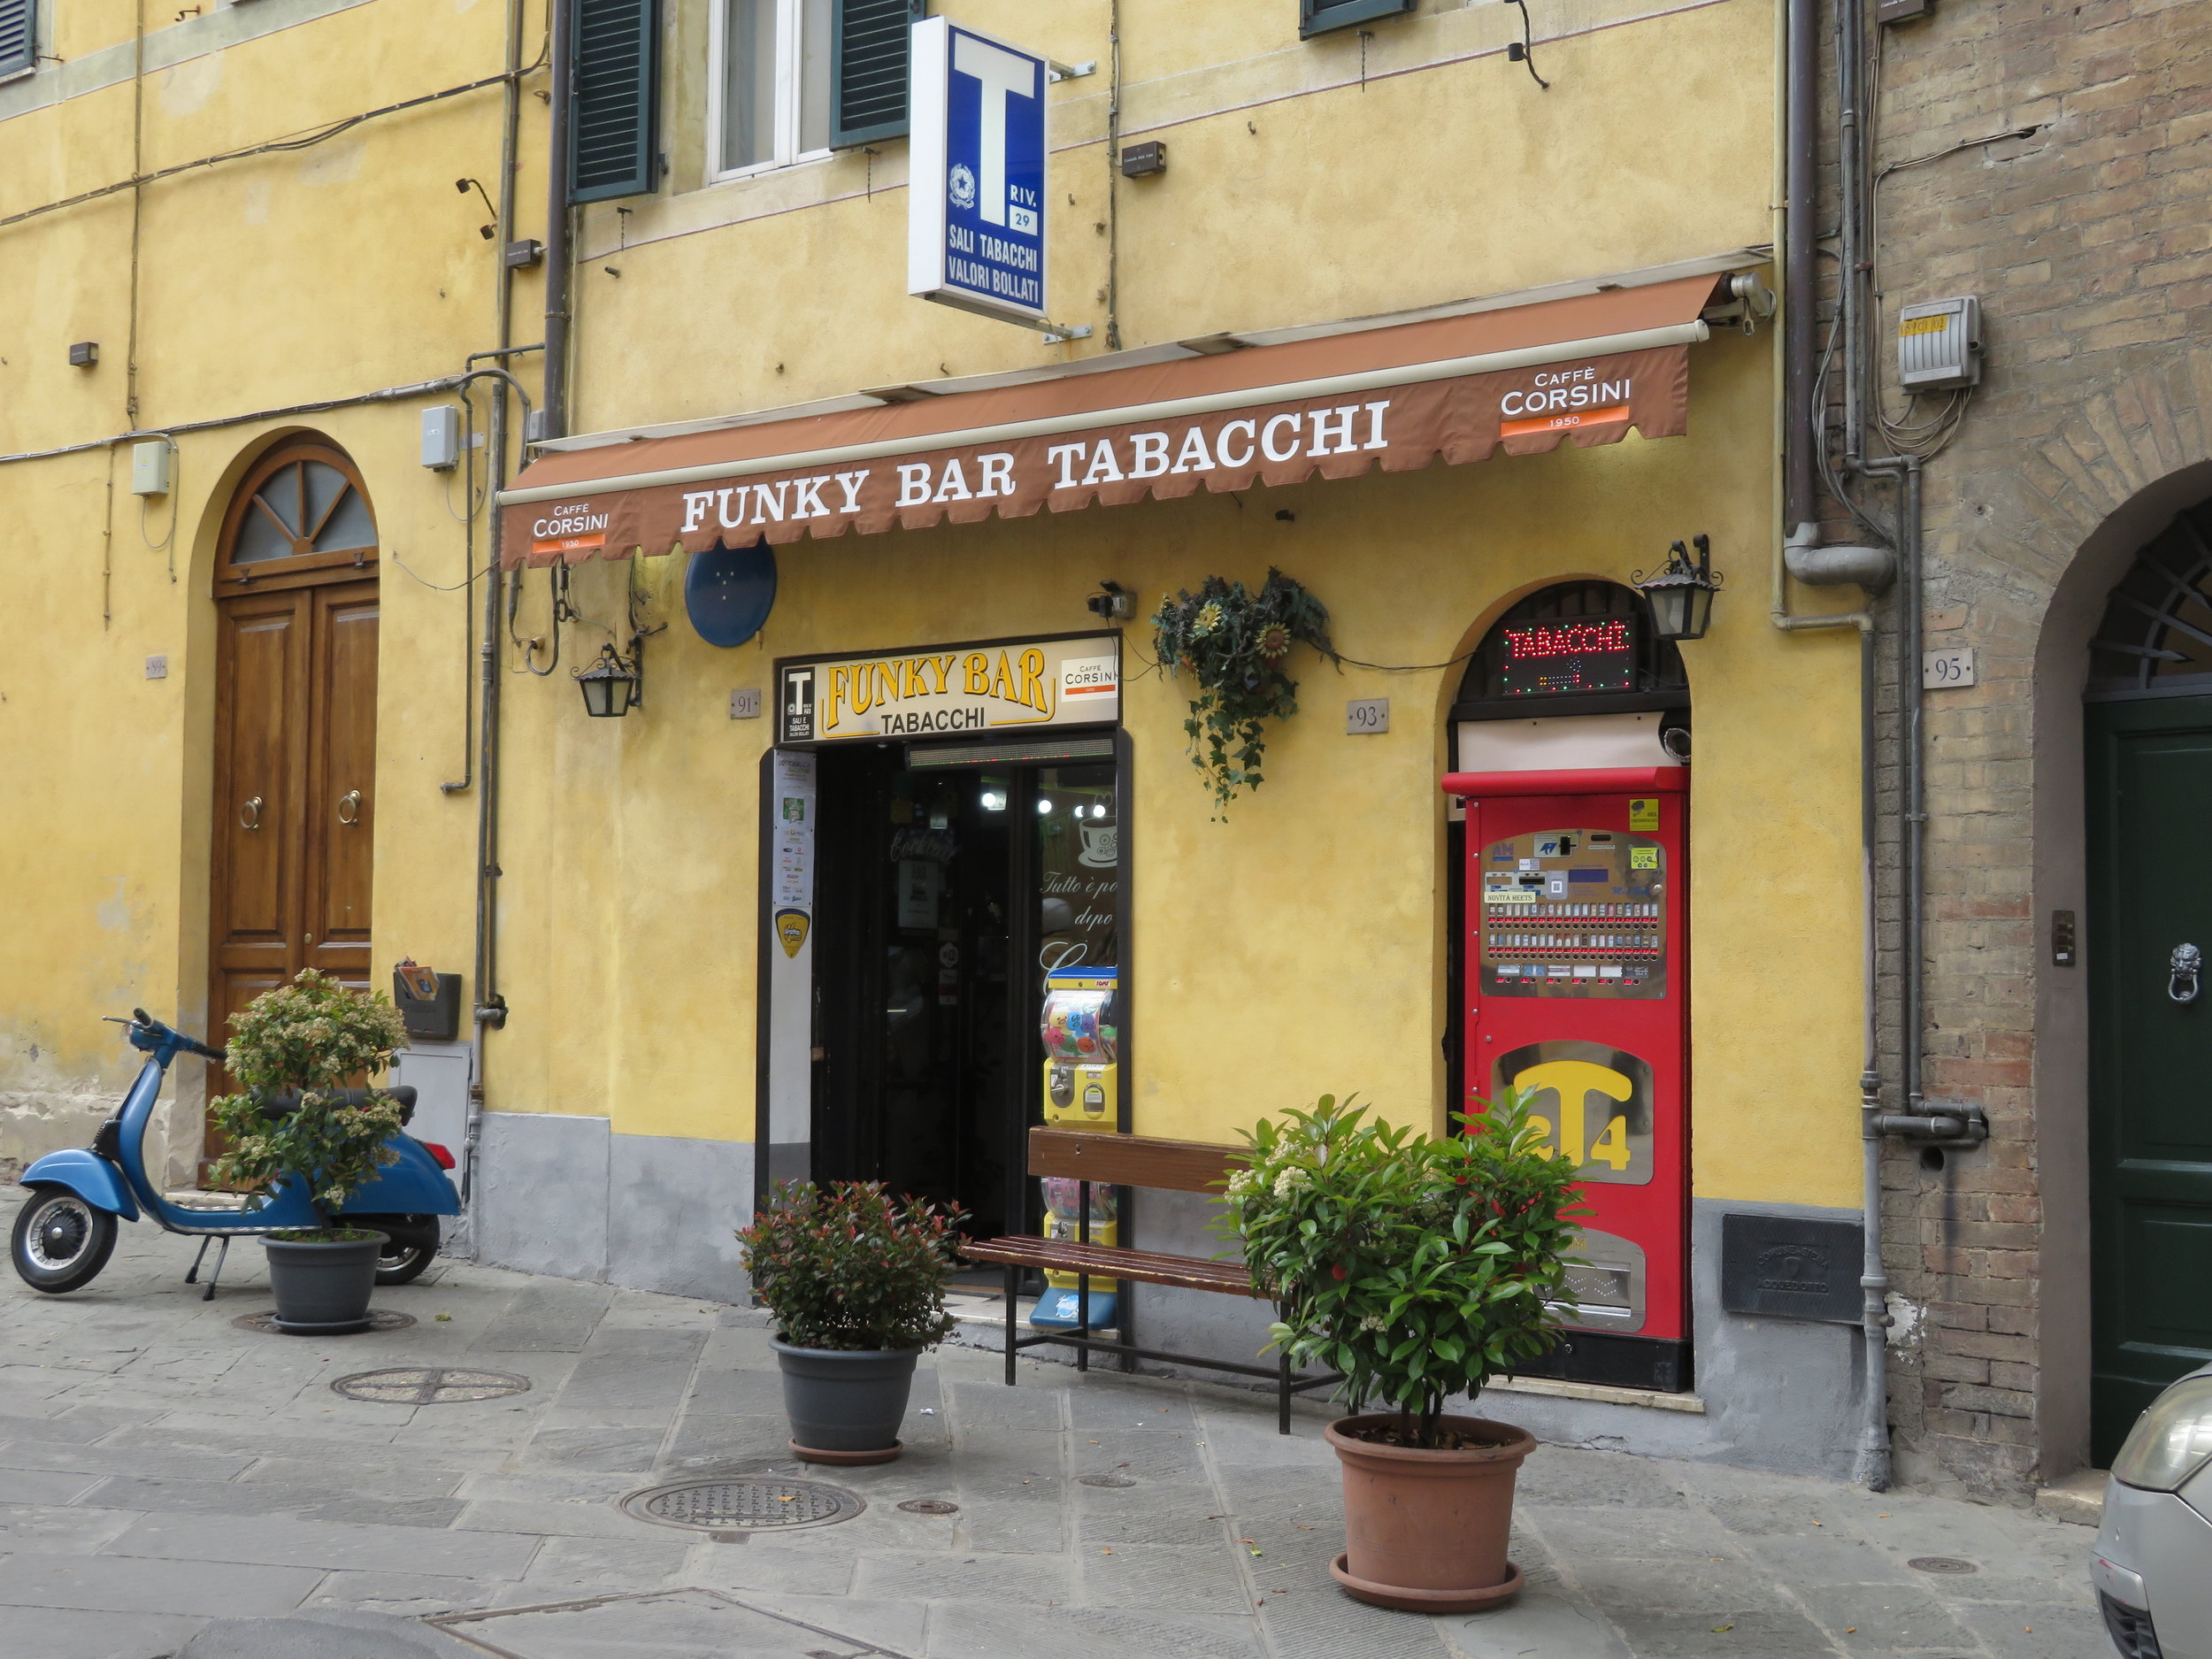 A bar/tabacchi in Italy serves coffee, morning pastries and also offers alcohol, cigarettes, lotto tickets and bus tickets.